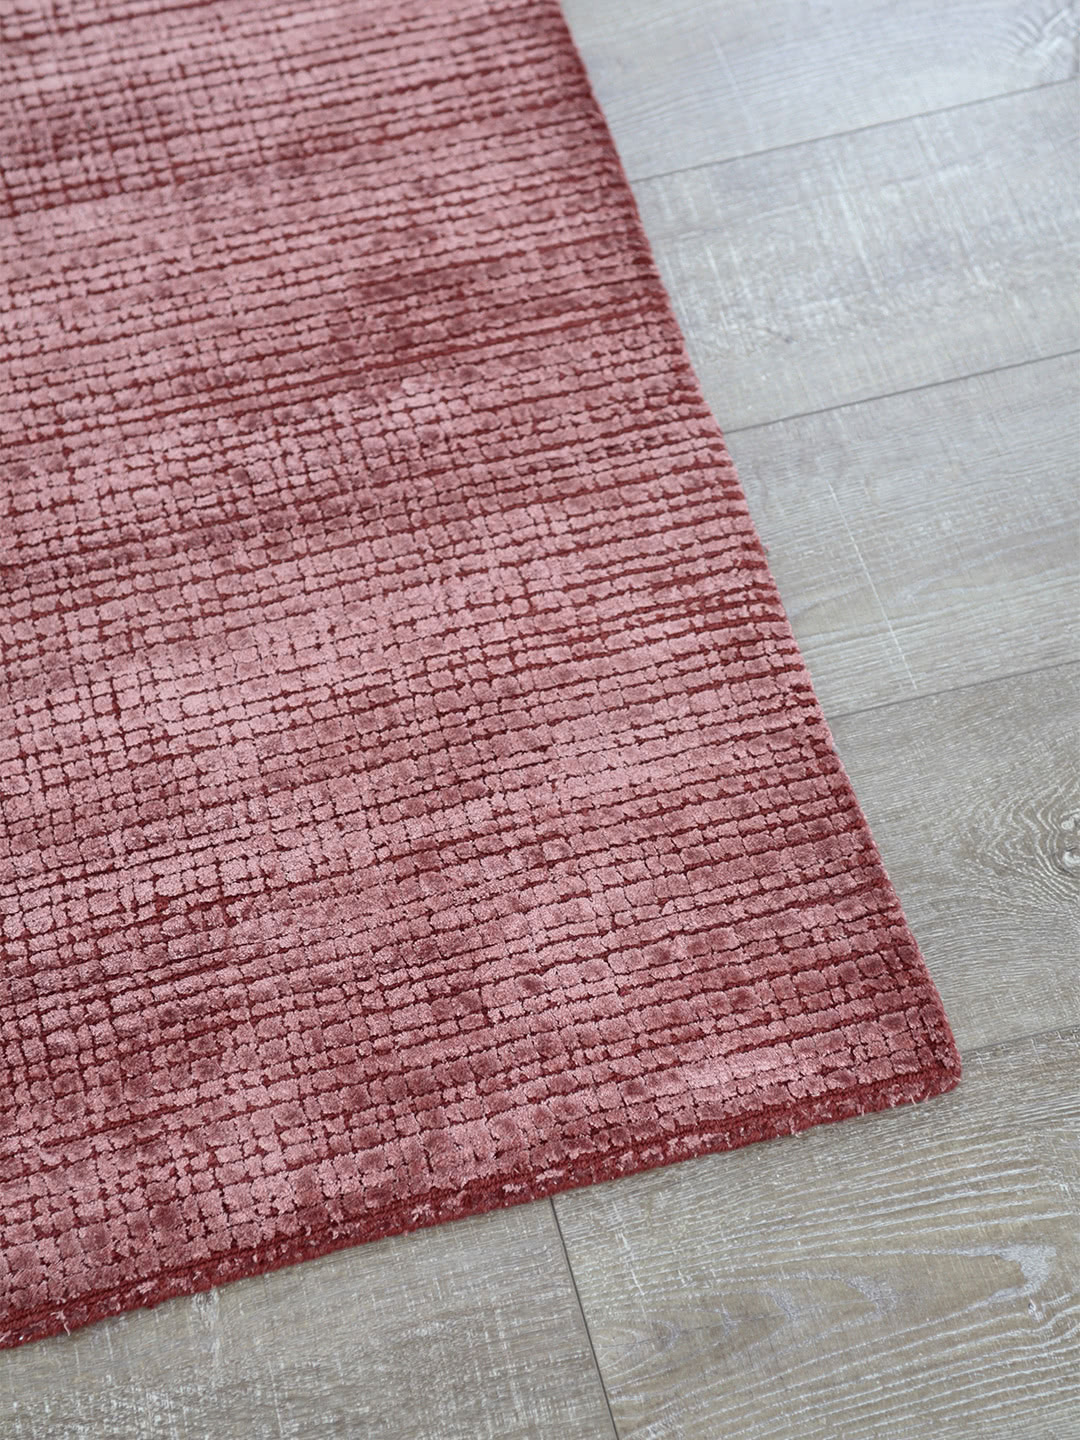 Lava Russet hand loom knotted wool and art silk rug